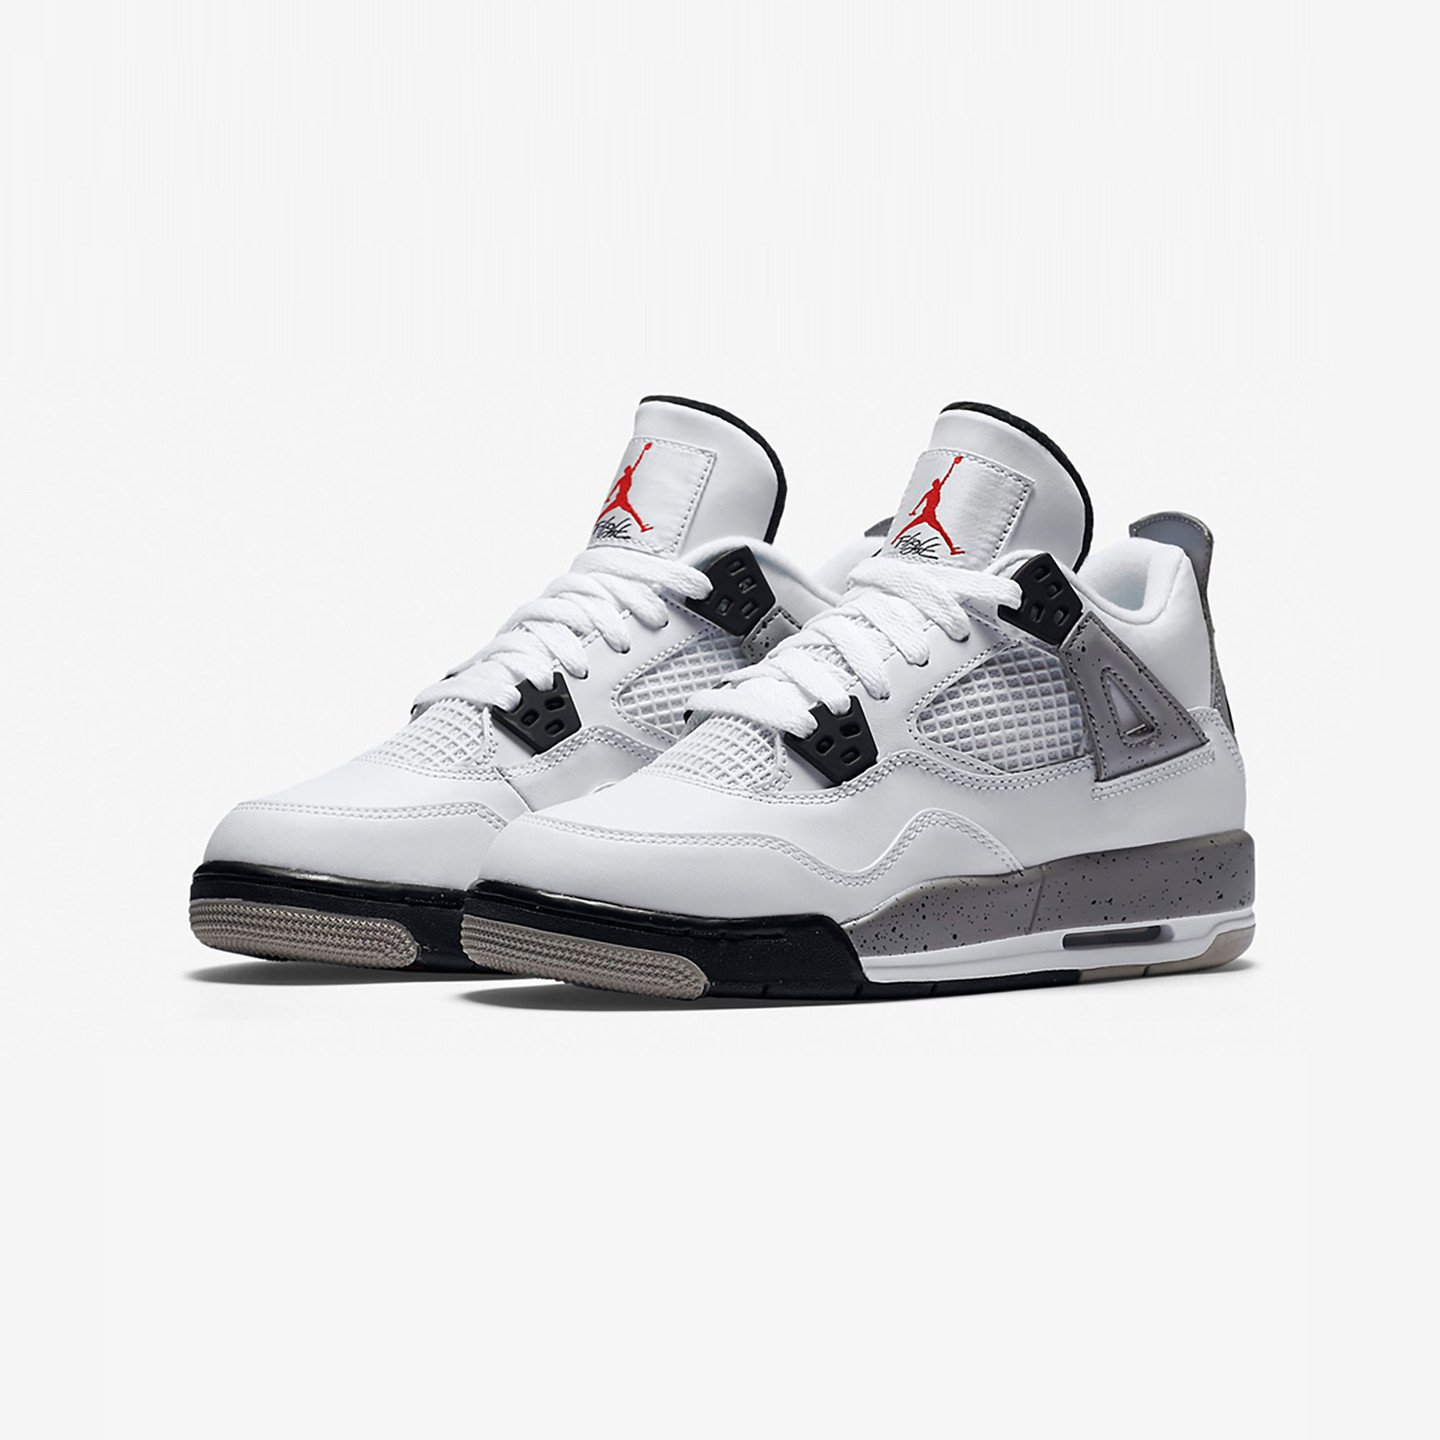 Nike Air Jordan 4 Retro GS Cement White / Fire Red / Tech Grey / Black 836016-192-36